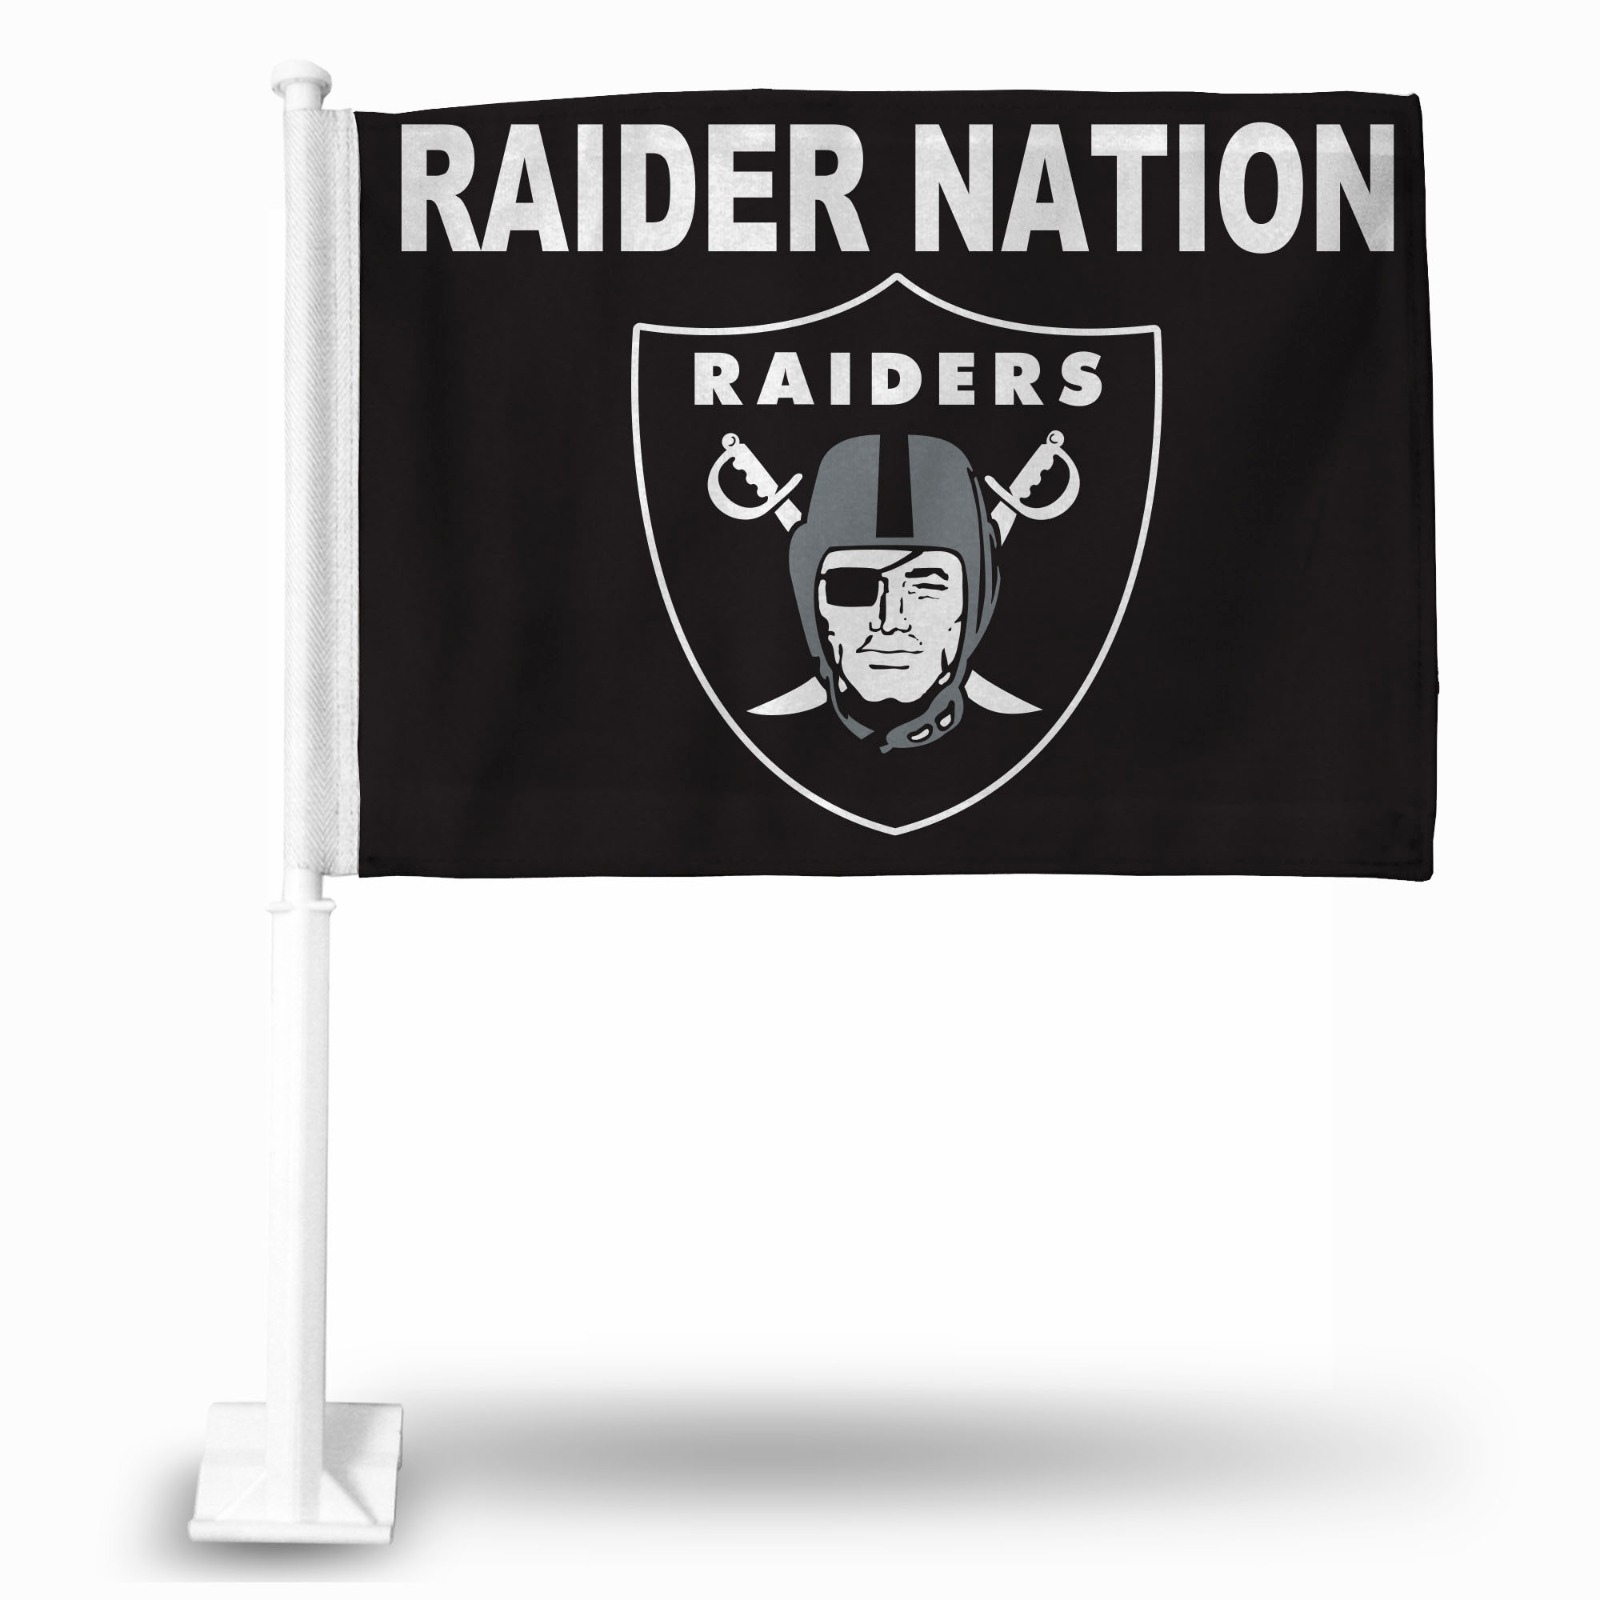 Las Vegas Raiders Raider Nation Premium 2 Sided Car Flag Auto Banner Oakland Ebay